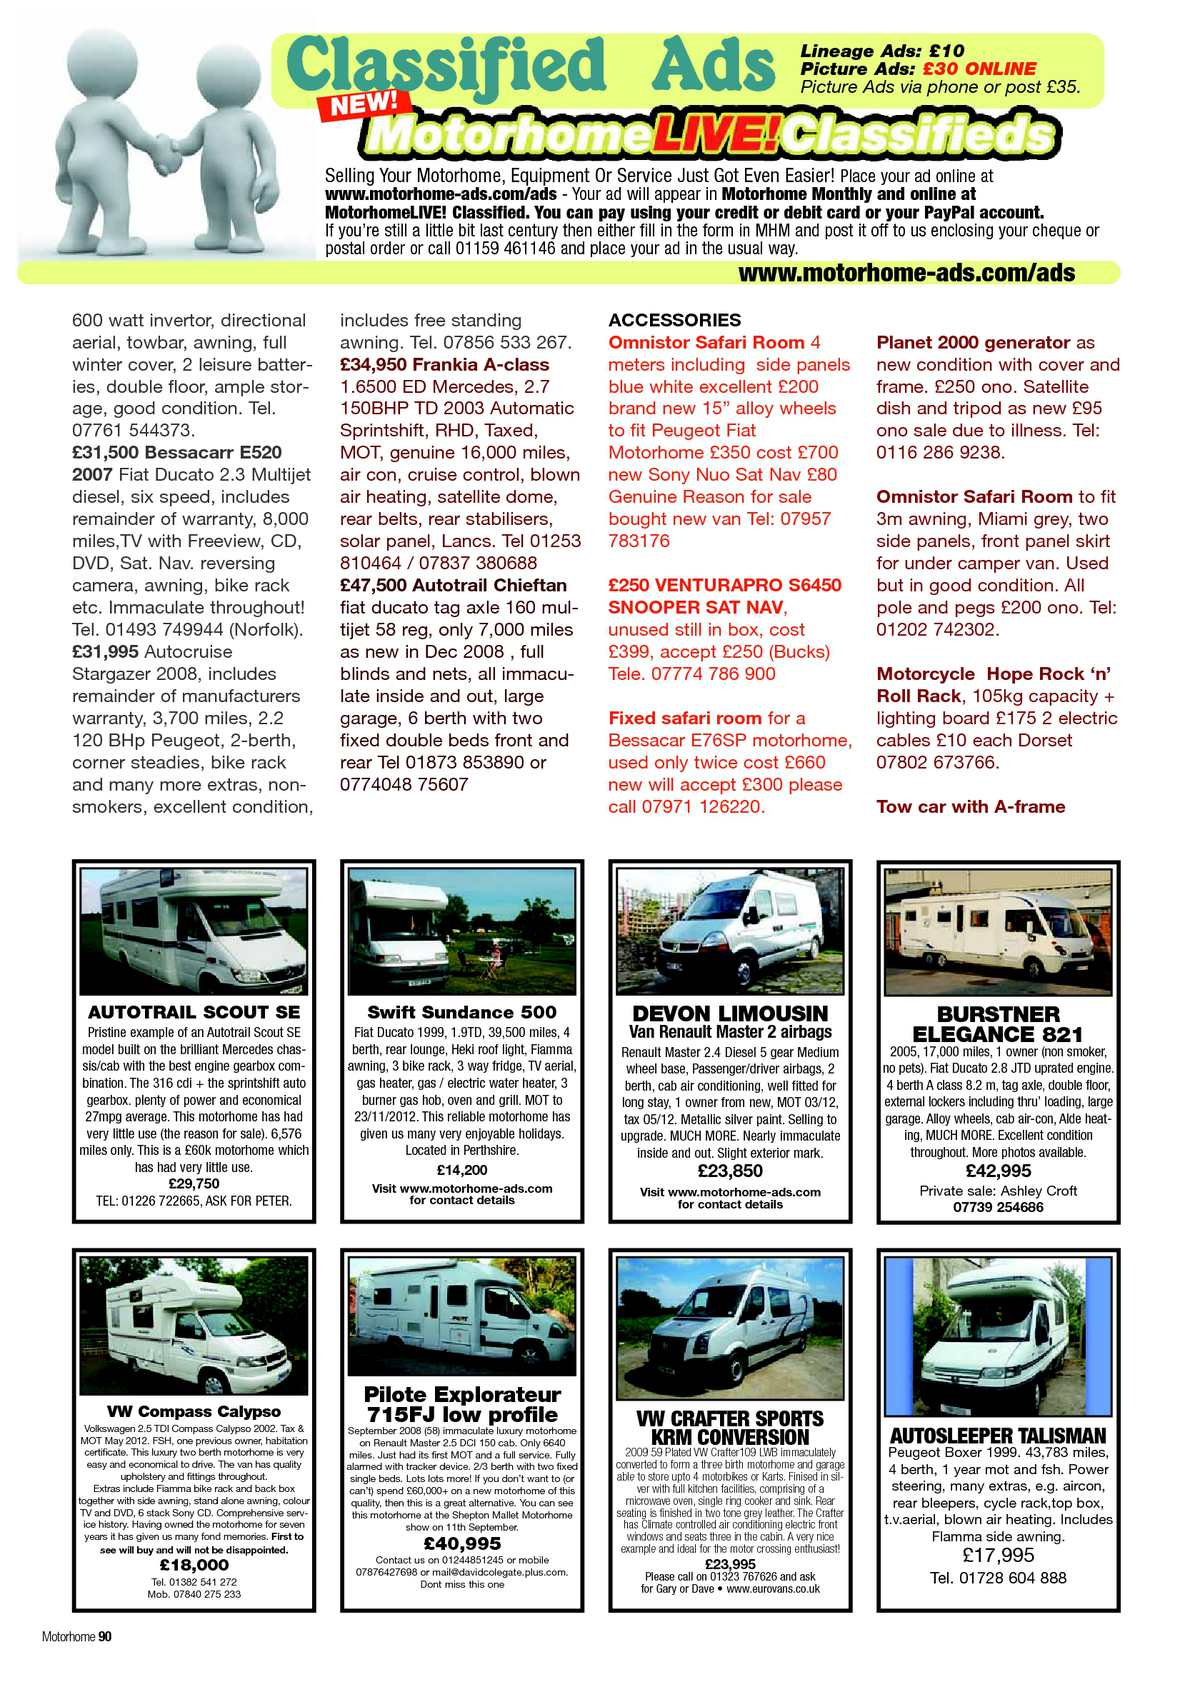 July 2012 motorhome monthly magazine calameo downloader page 92 fandeluxe Gallery